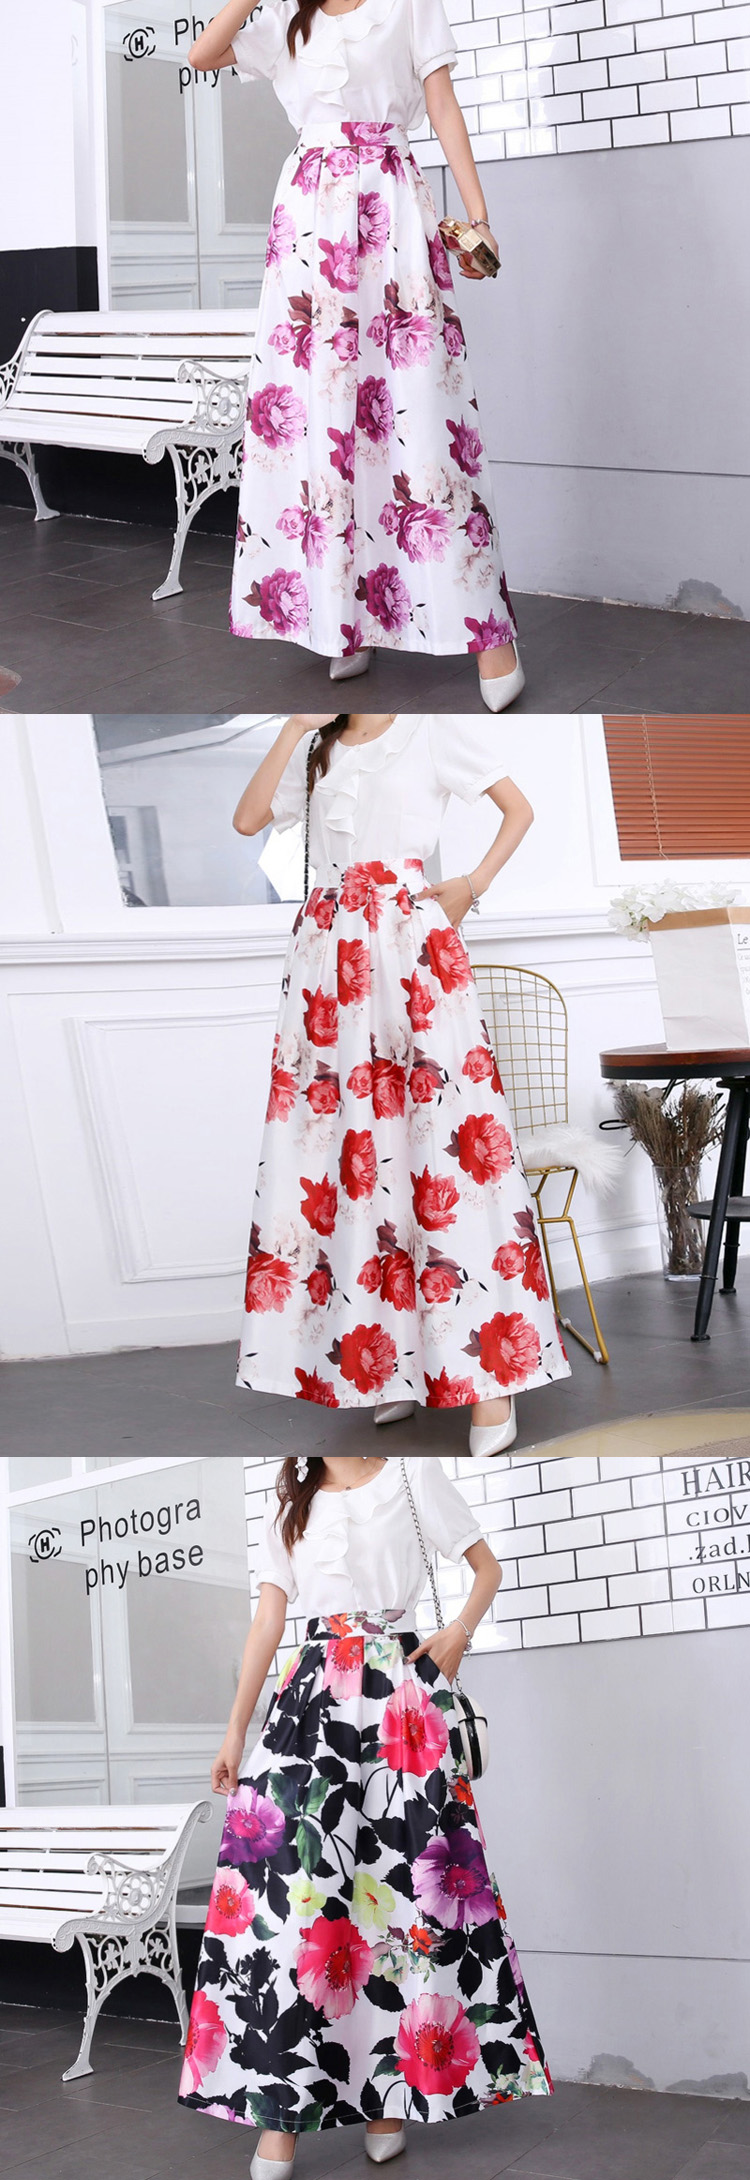 HTB1mK4PUrvpK1RjSZFqq6AXUVXaP - Plus size Maxi Skirt Summer Fashion Vintage High Street A-line High Waist Floral Polka Dot Long Skirts for Women Jupe Longa